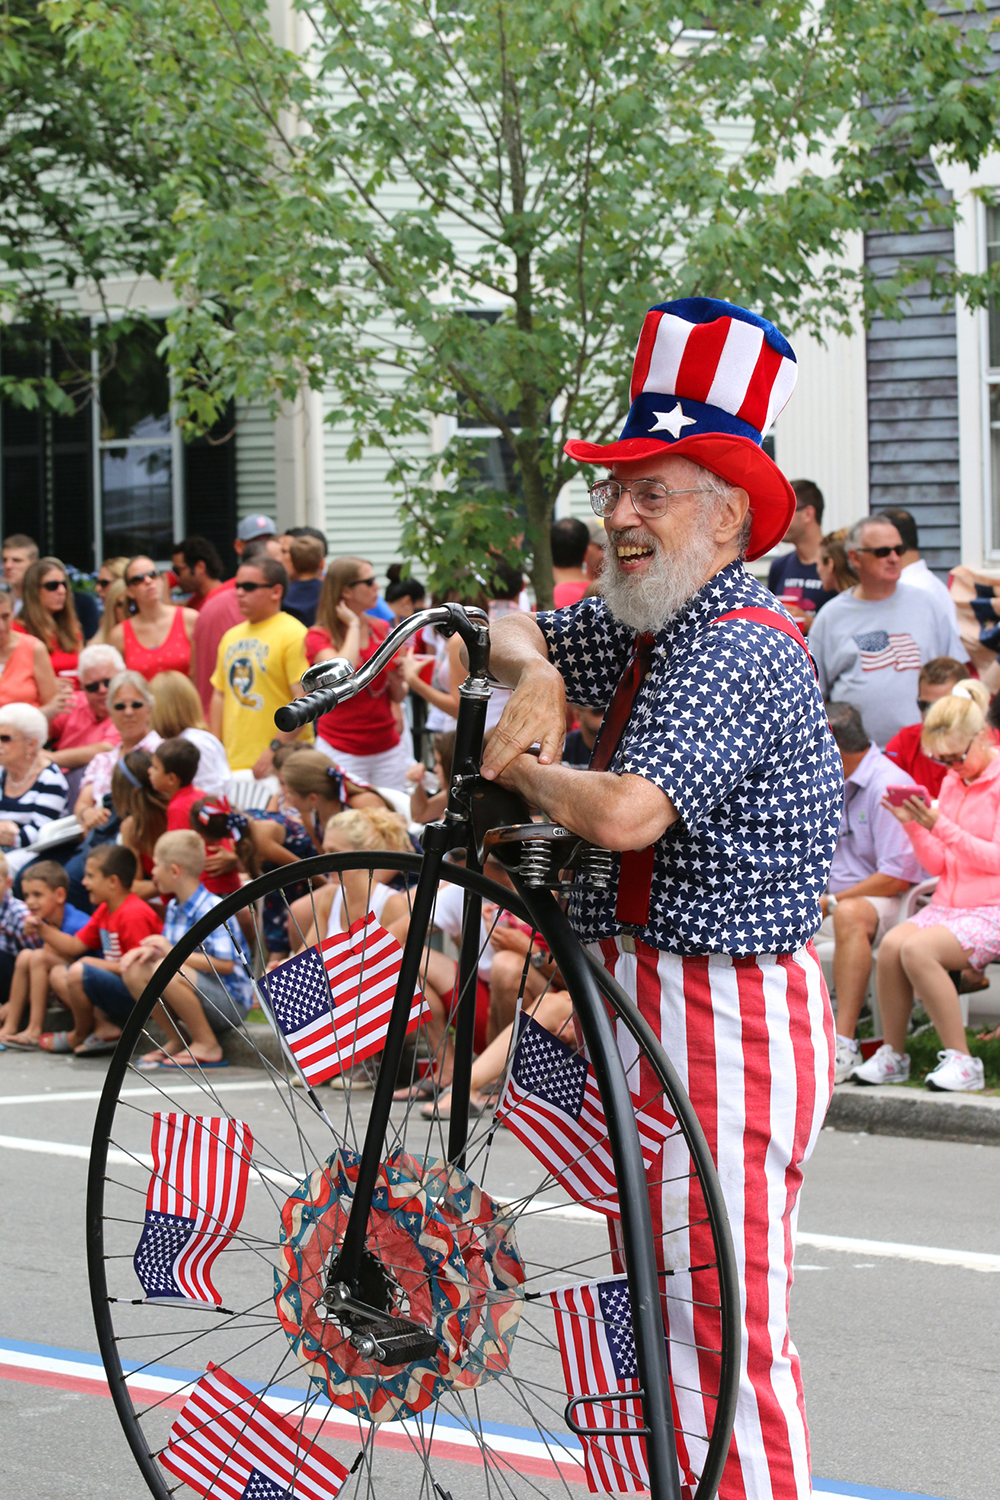 Bristol 4th of July Parade-Cliff Notes-The Chanler.jpg